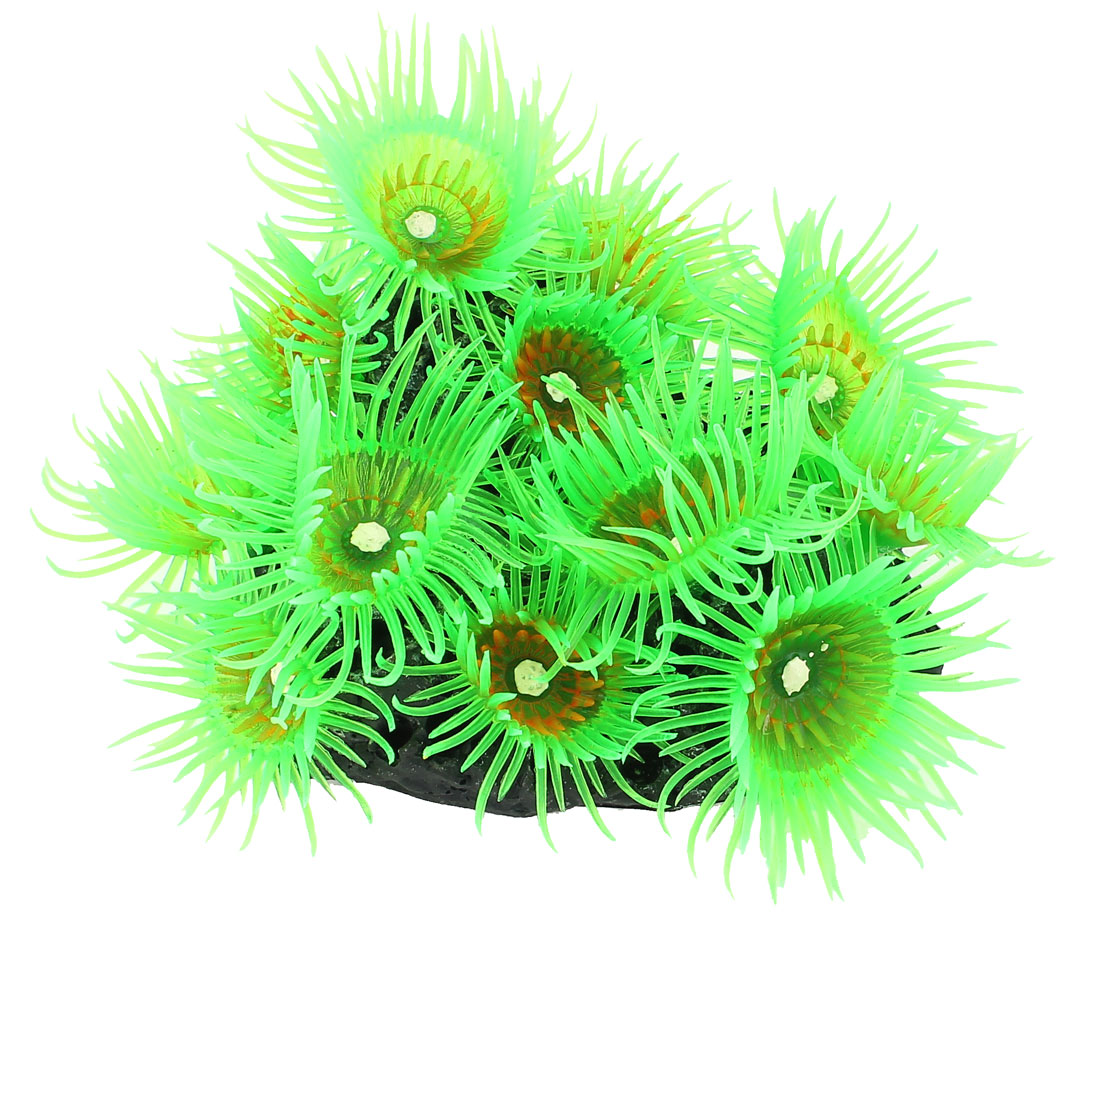 Fishbowl Aquarium Silicone Artificial Underwater Coral Sea Anemone Decor Green w Ceramic Base